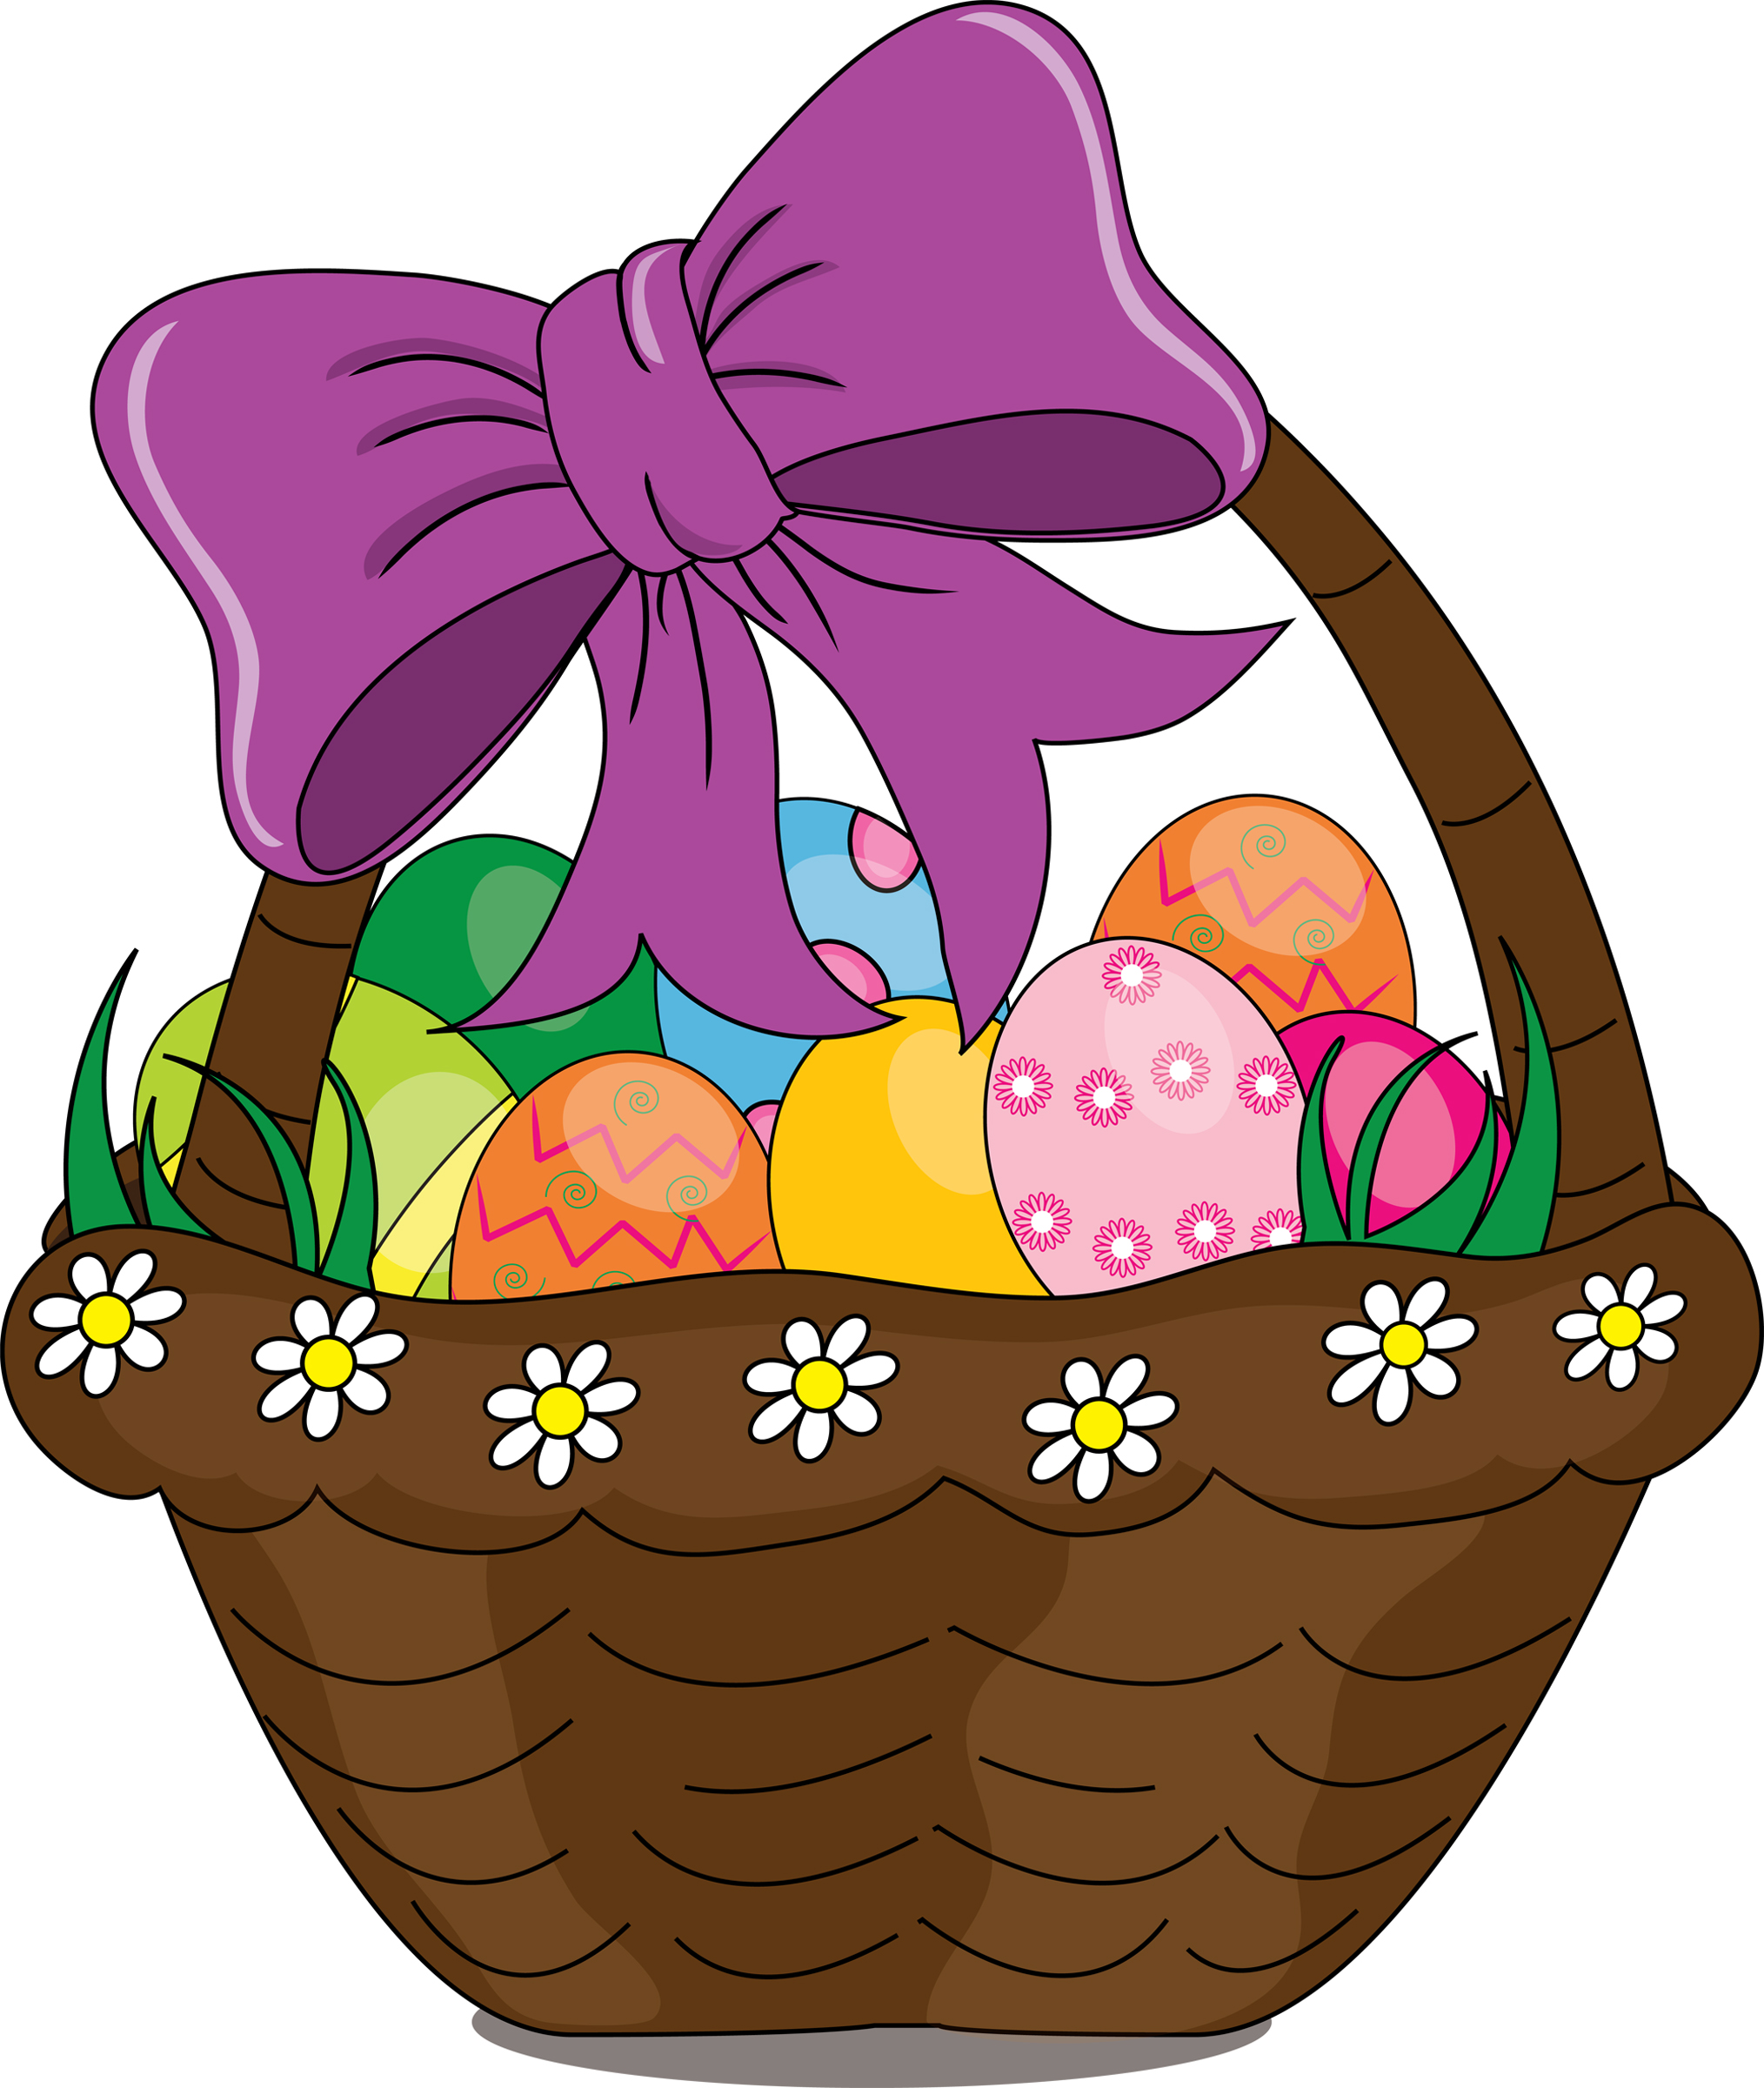 Easter baskets clipart.